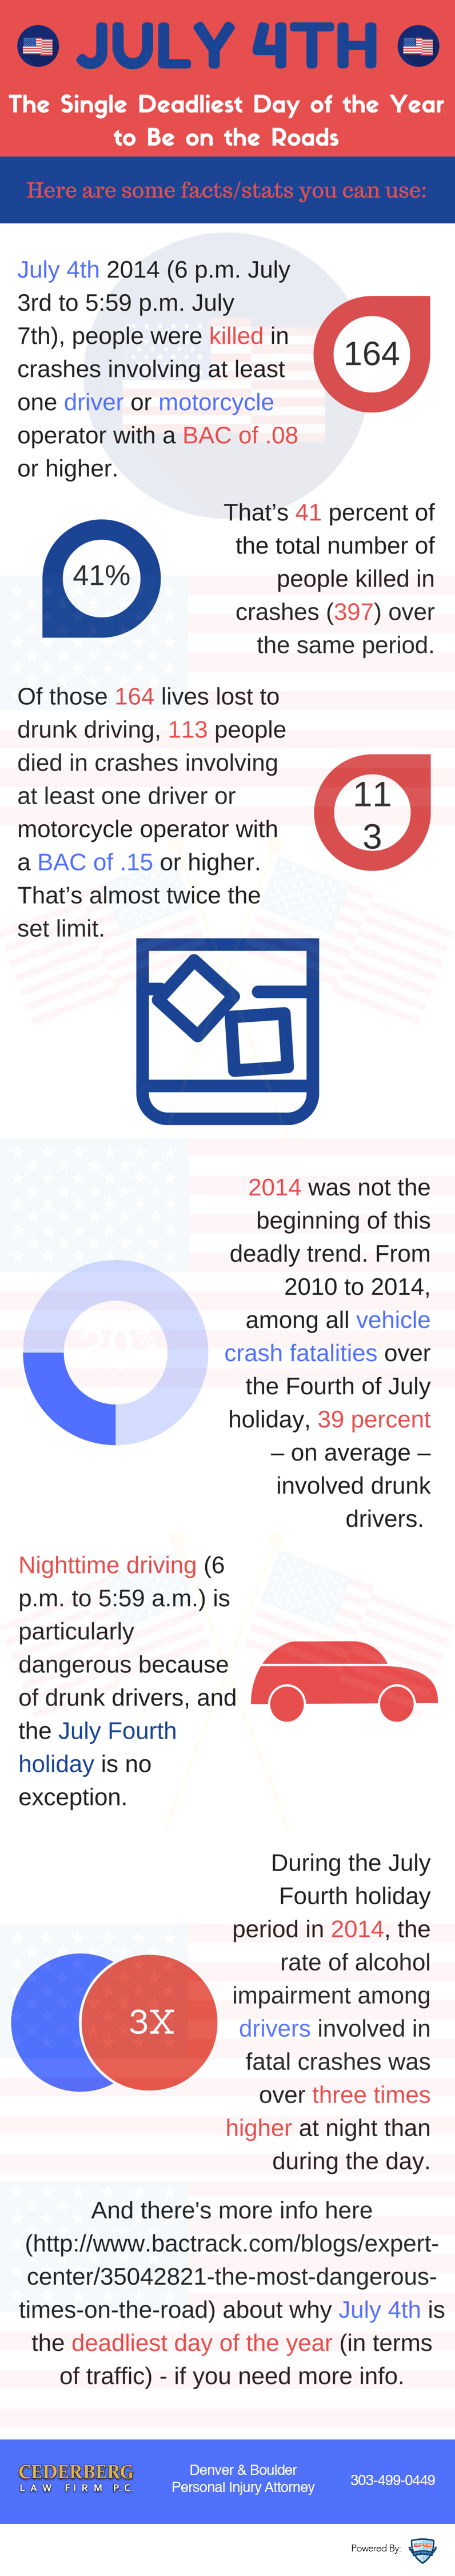 july 4th is the deadliest day to be on the roads